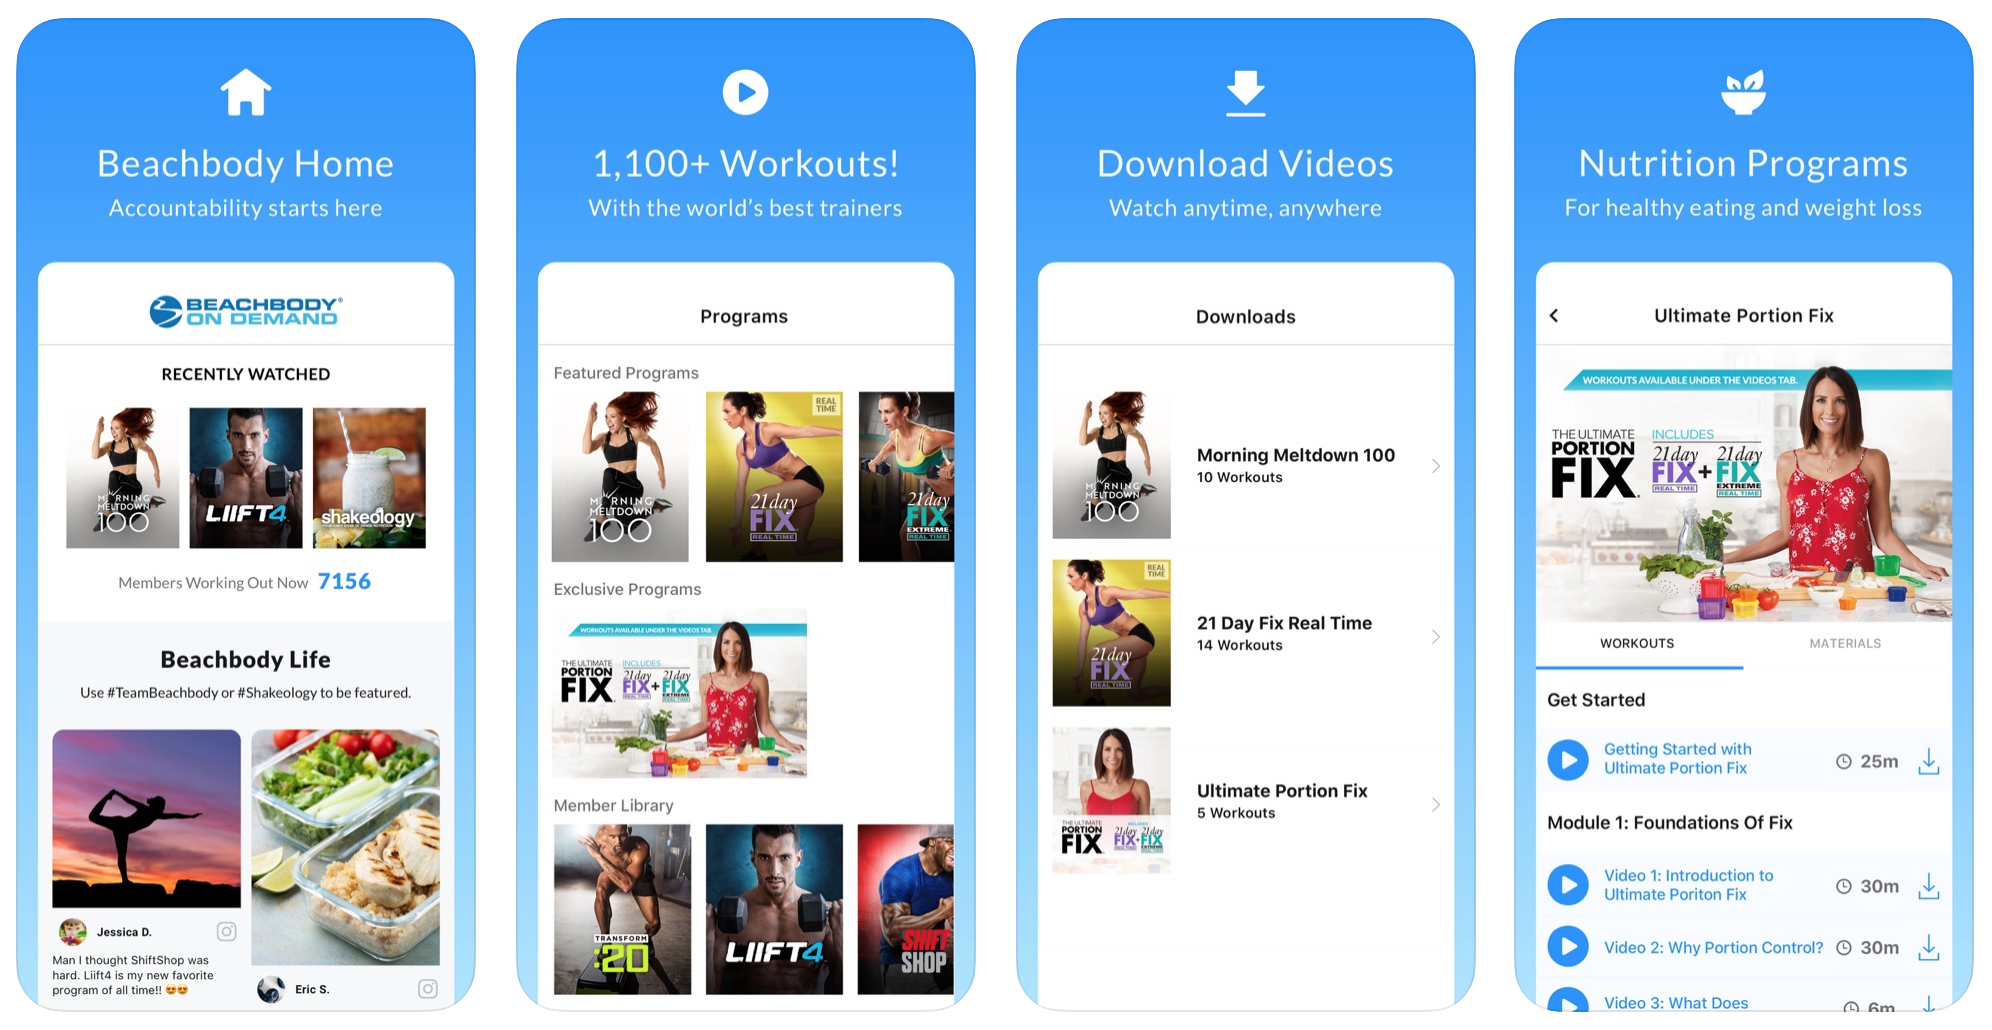 Best Online Fitness Programs For At Home Workouts